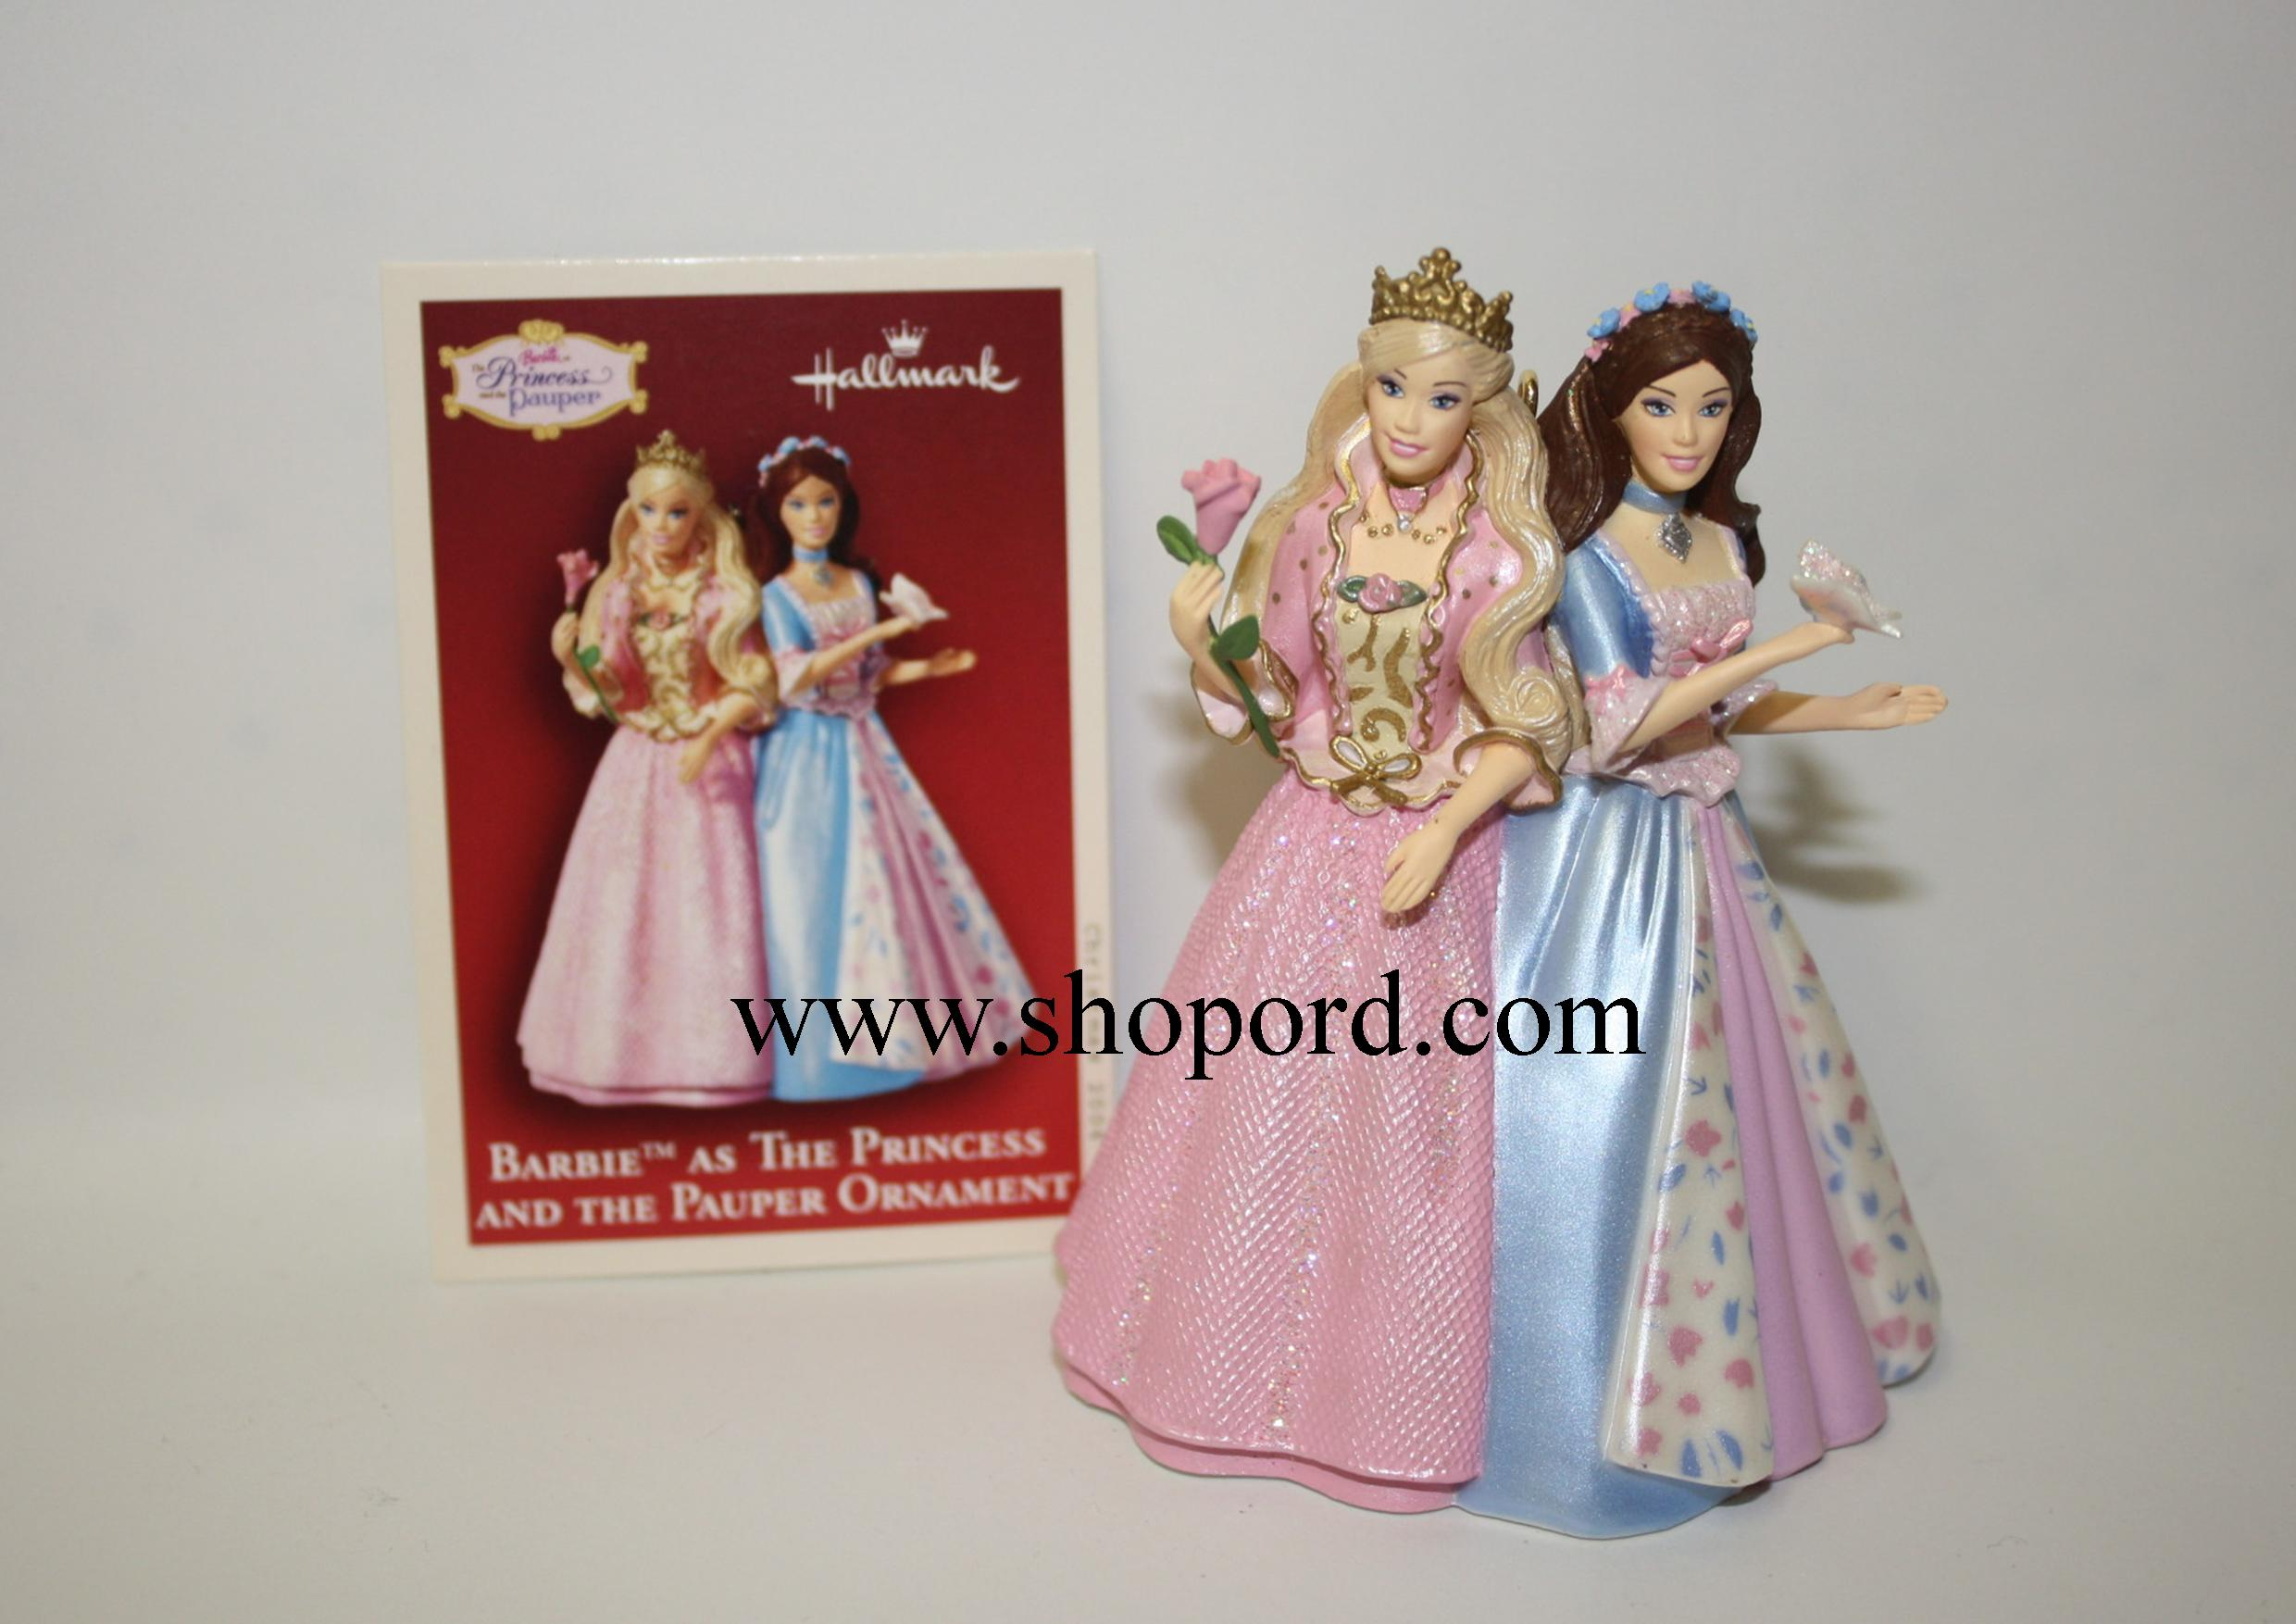 Hallmark 2004 Barbie As The Princess And The Pauper Ornament QXI8614